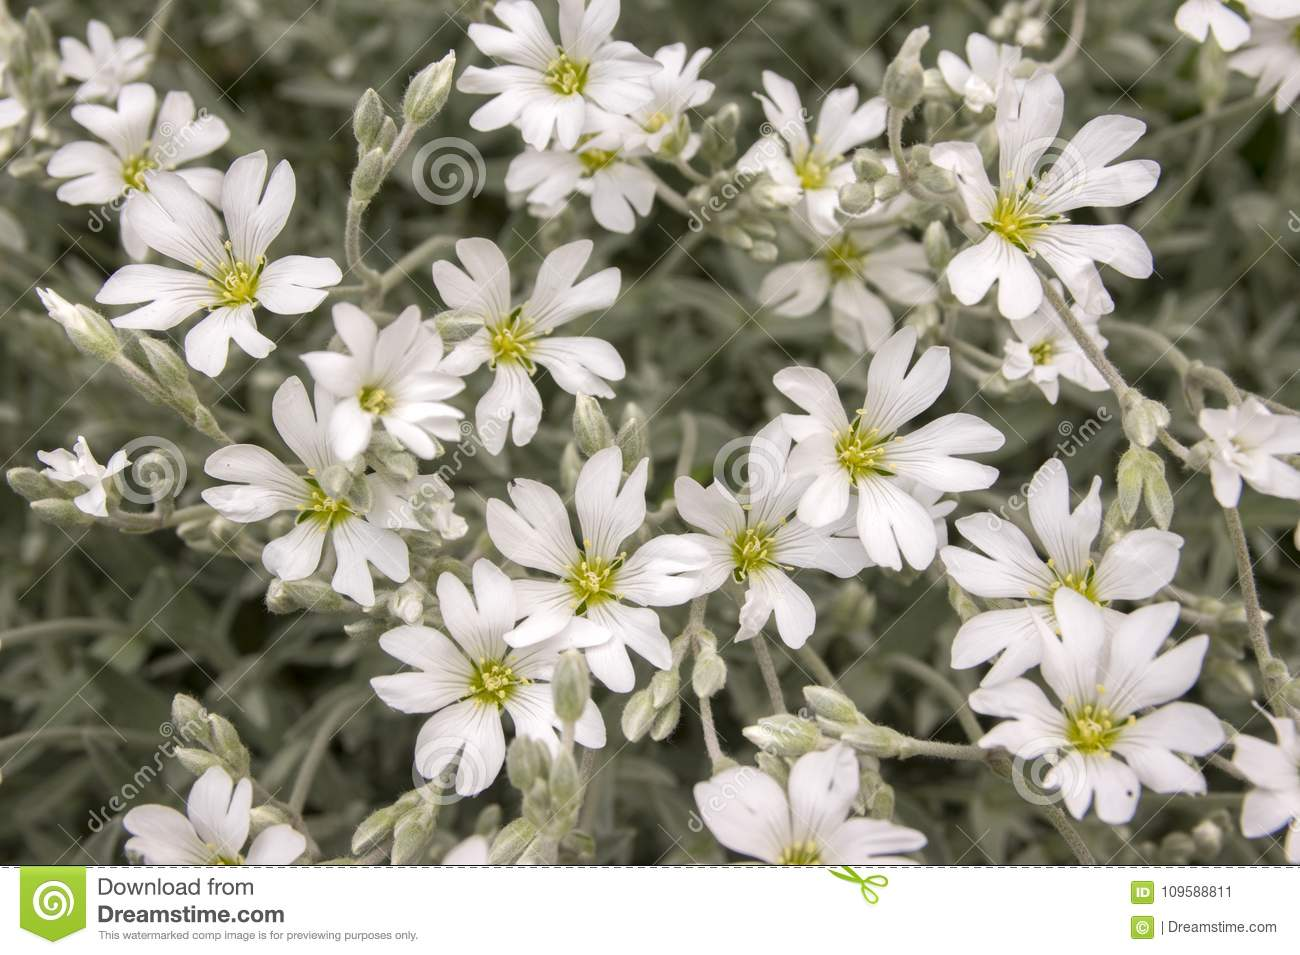 Snow in summer cerastium tomentosum in bloom white flowers download snow in summer cerastium tomentosum in bloom white flowers background stock mightylinksfo